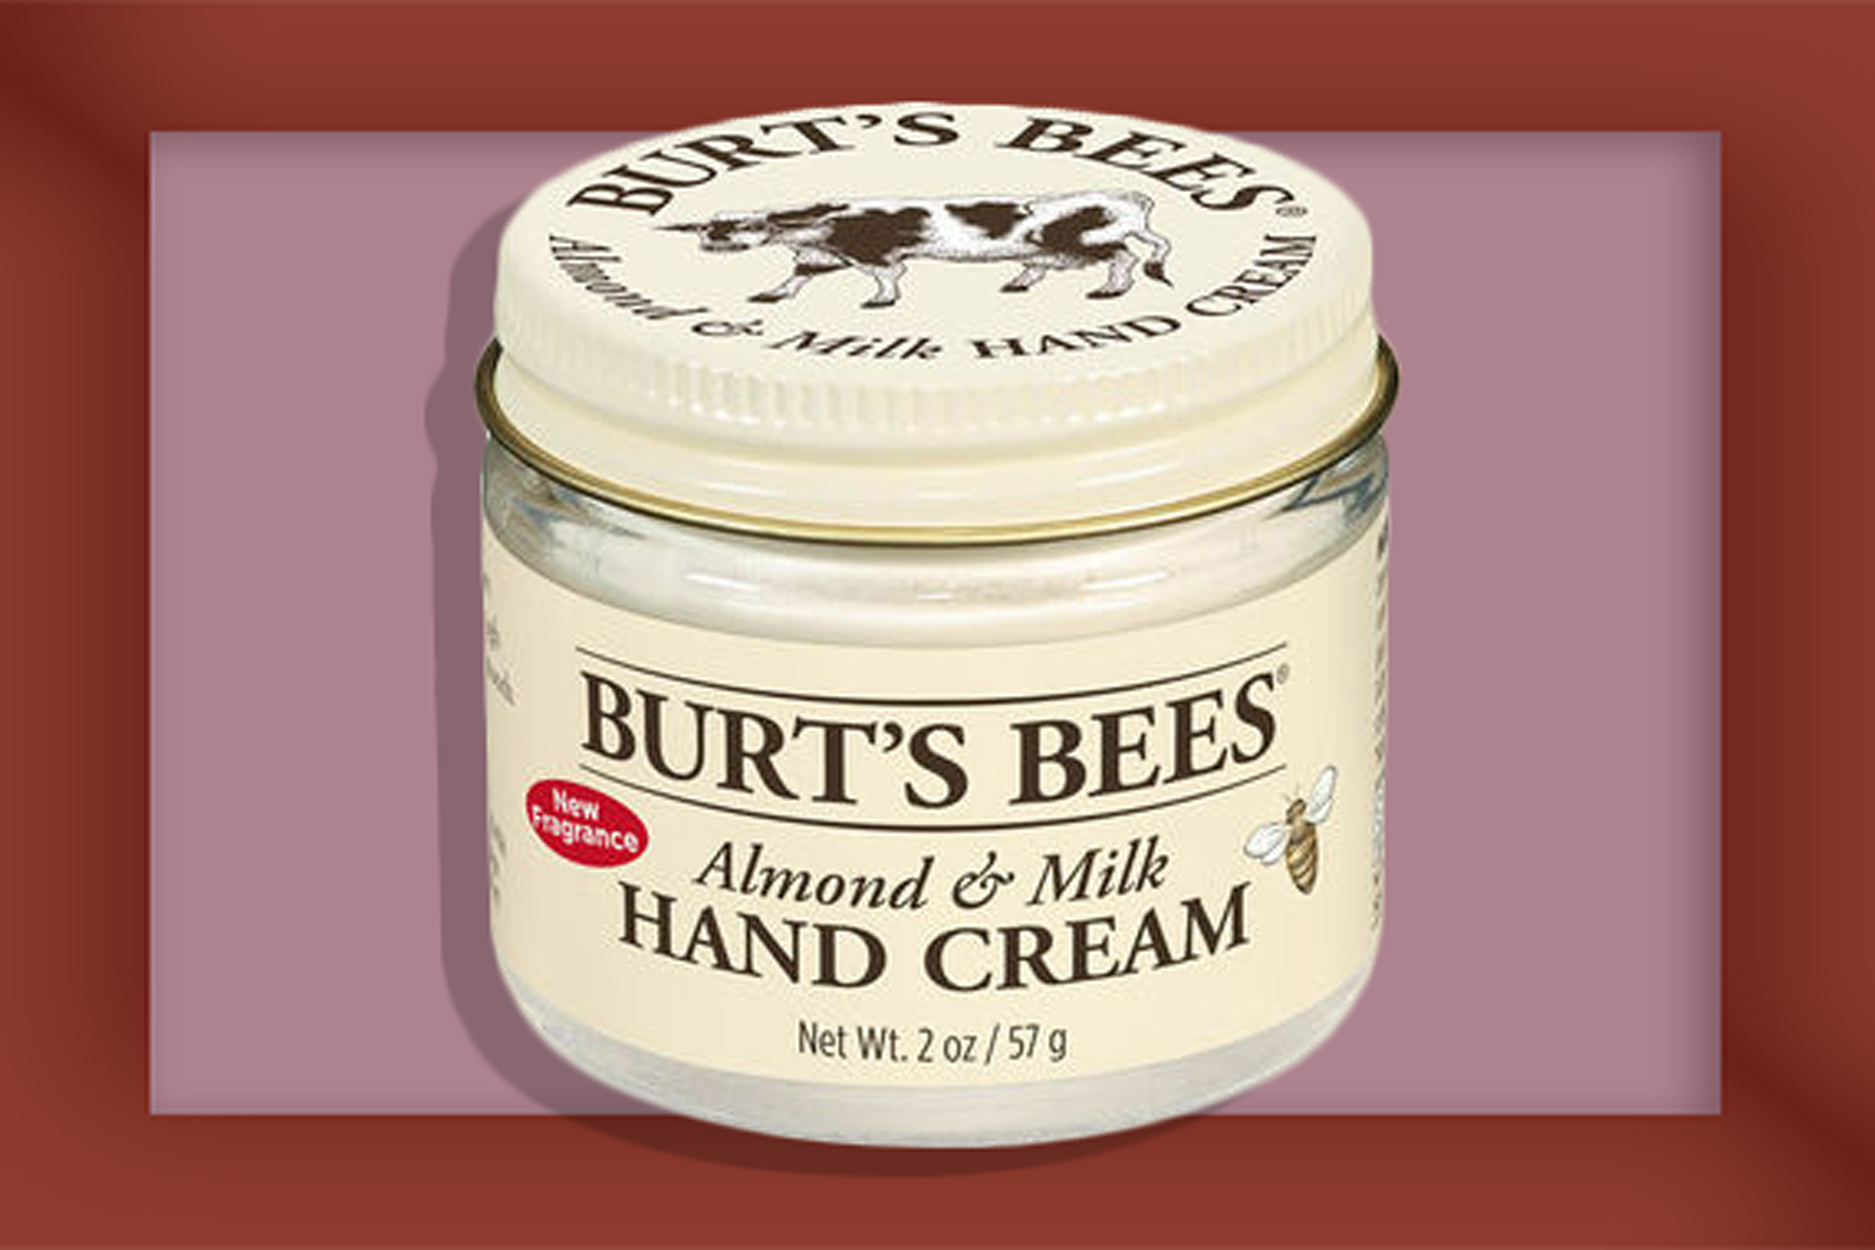 Hand Cream Burt's Bees Almond Milk